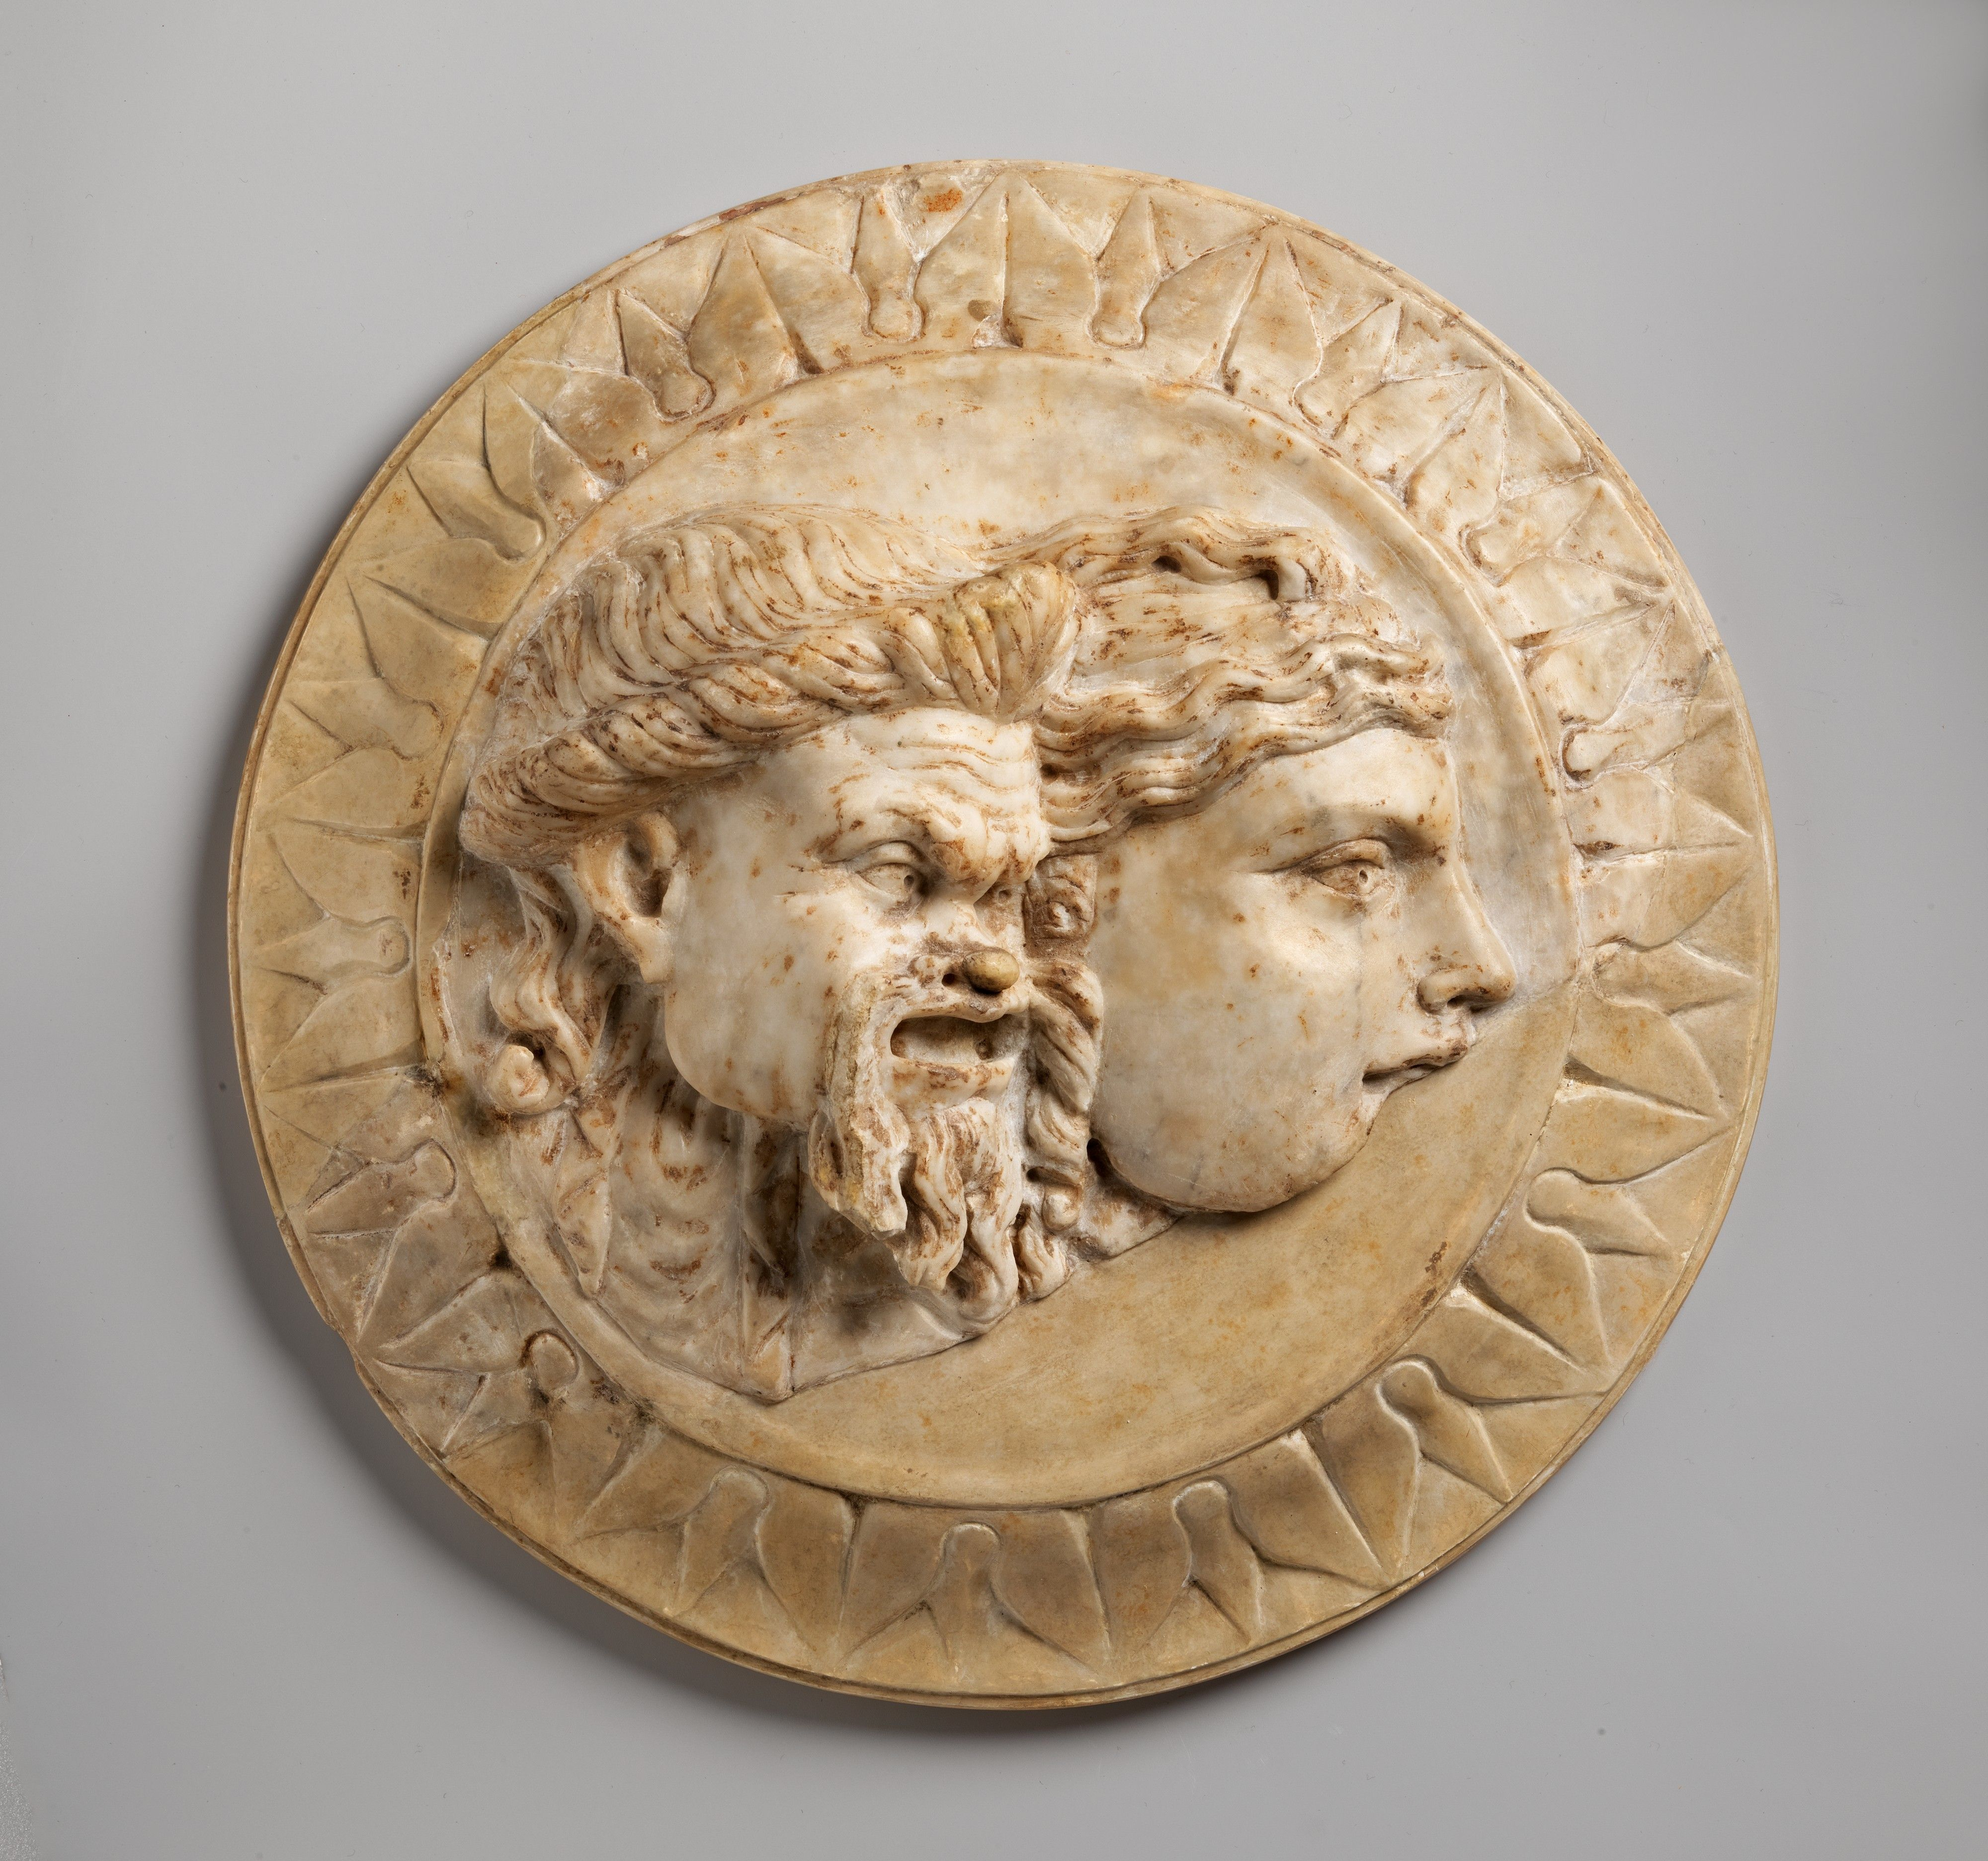 Marble disk with two theater masks in relief. Period: Early Imperial. Date: 3rd quarter of 1st century A.D. Culture: Roman.